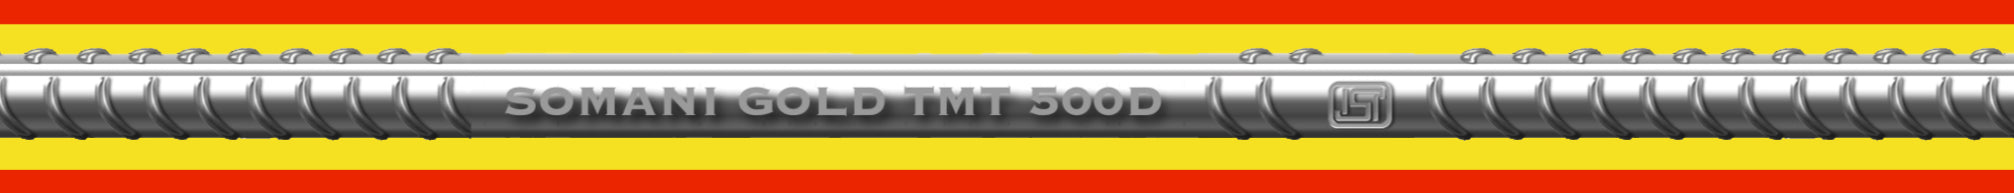 Somani Gold TMT Steel Bars | Hindustan Steel Suppliers